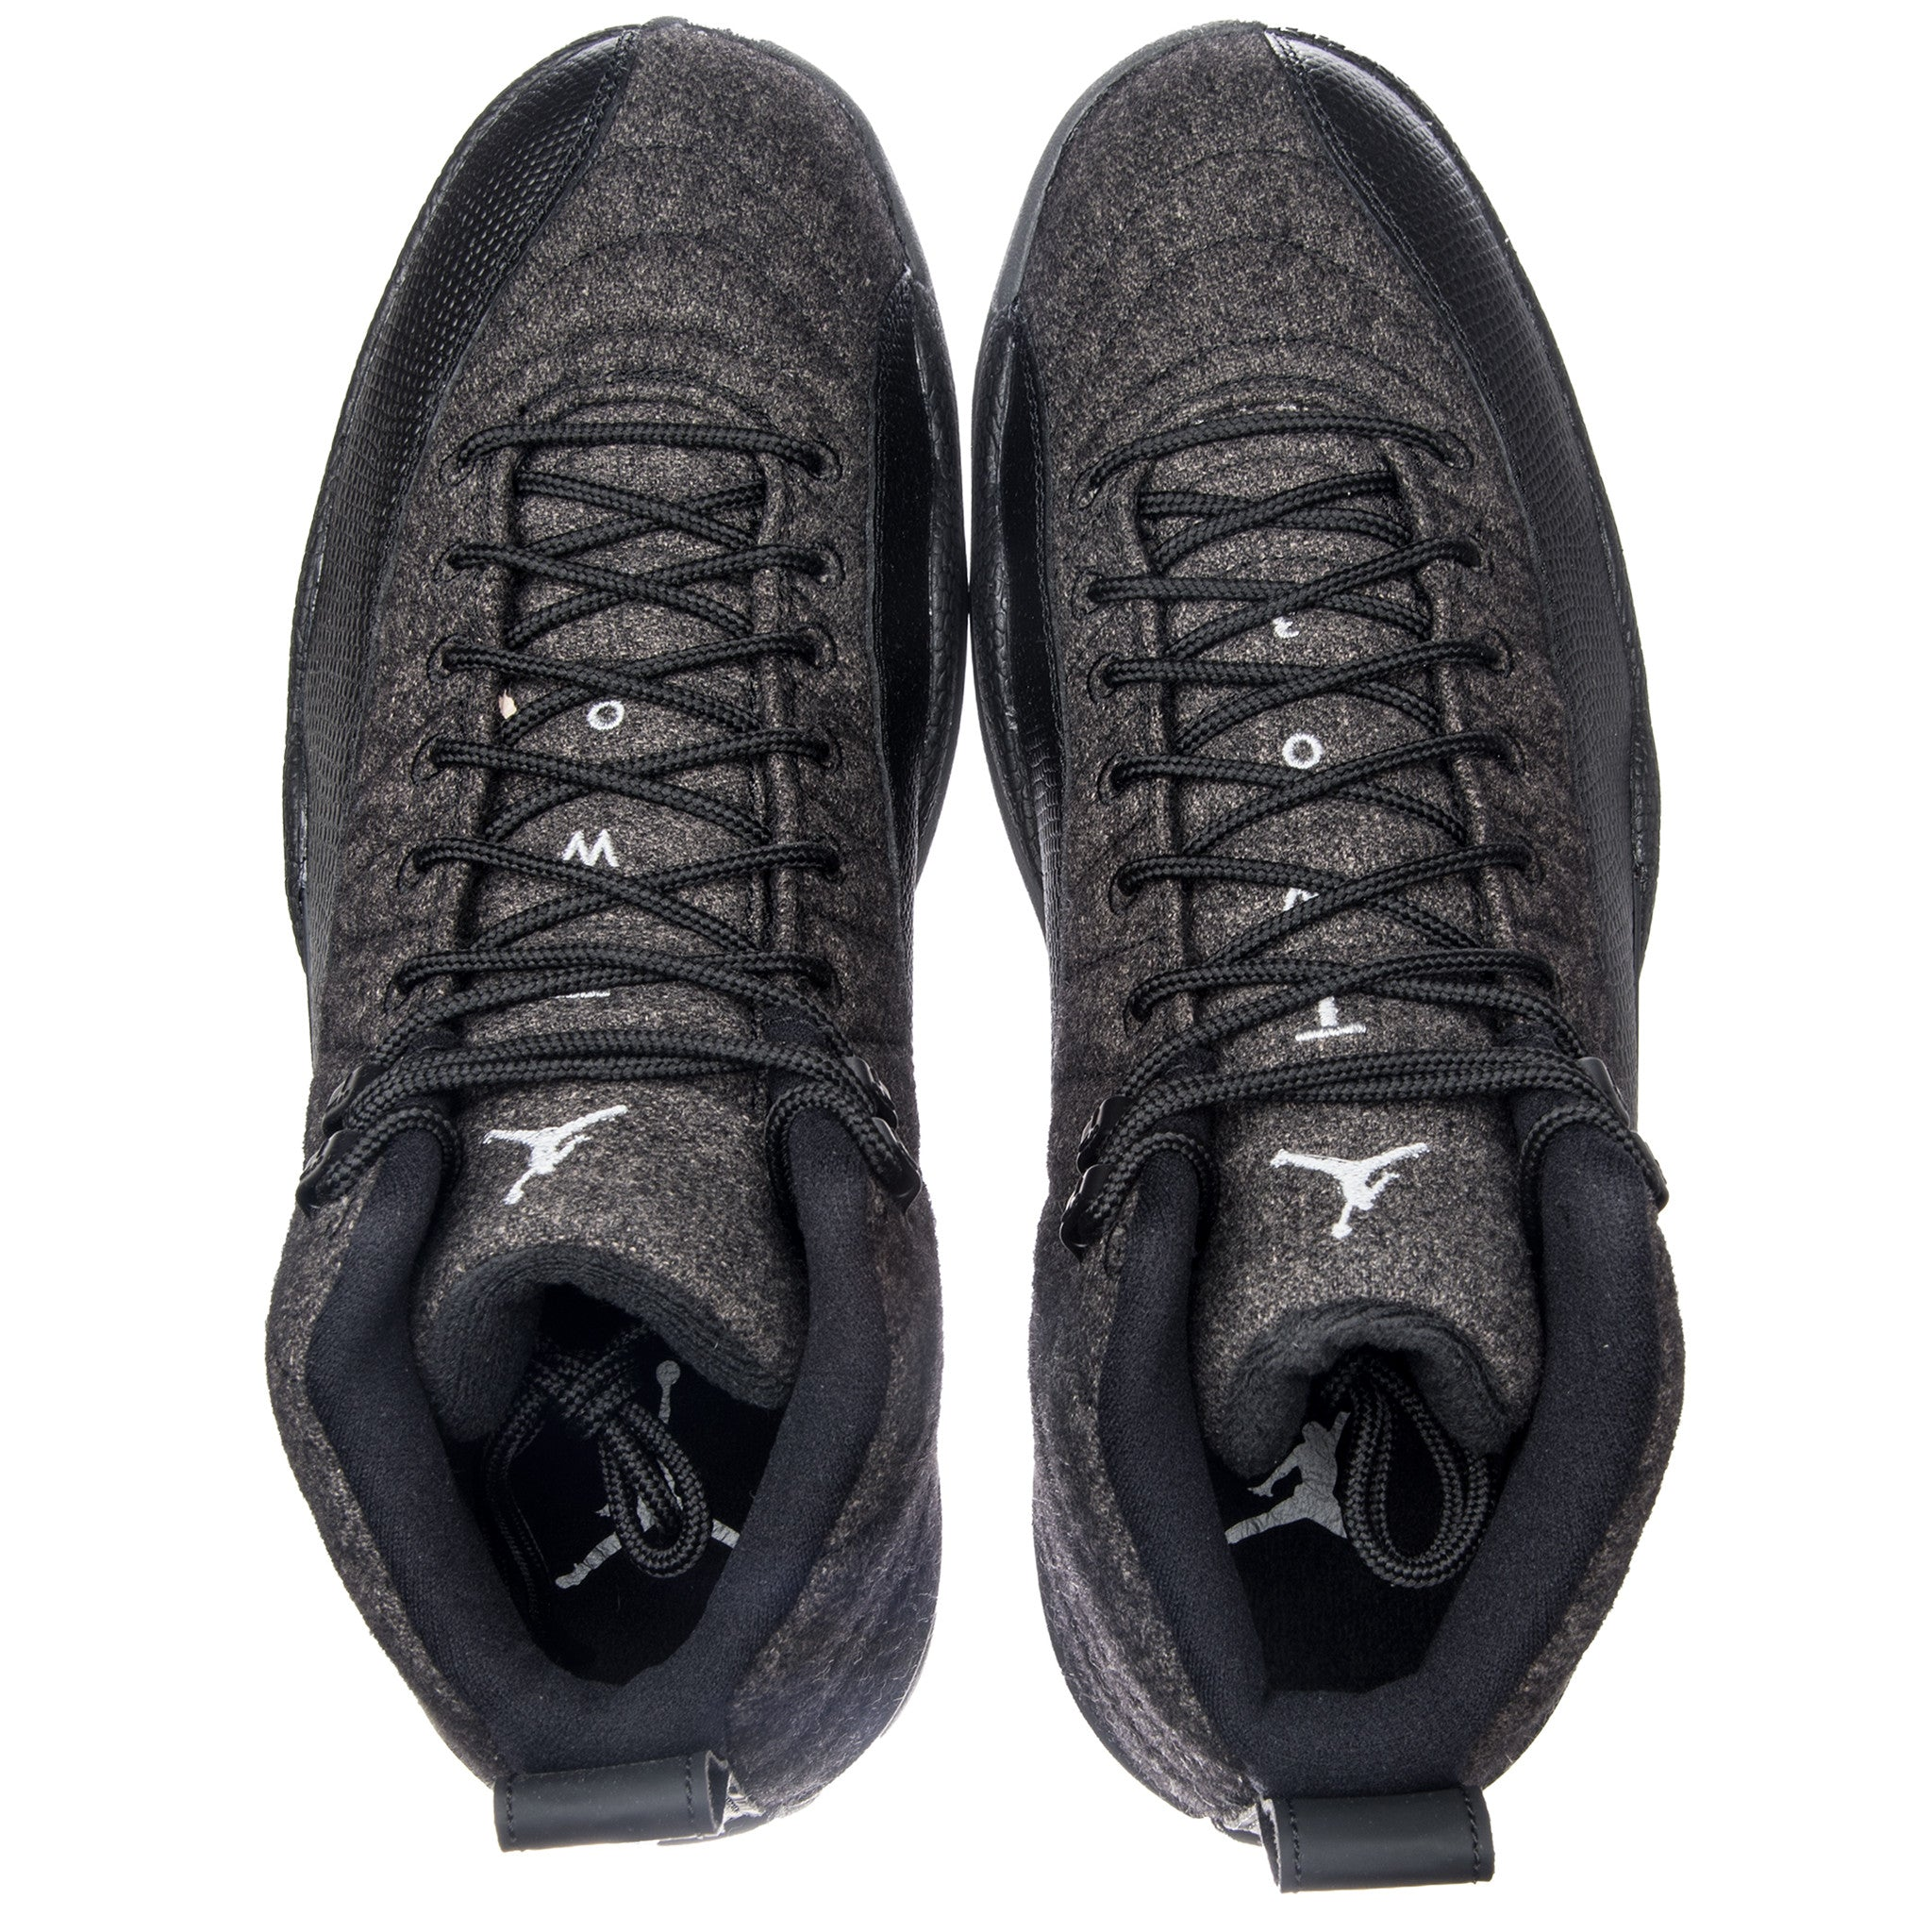 Air Jordan 12 Retro Wool (BG)